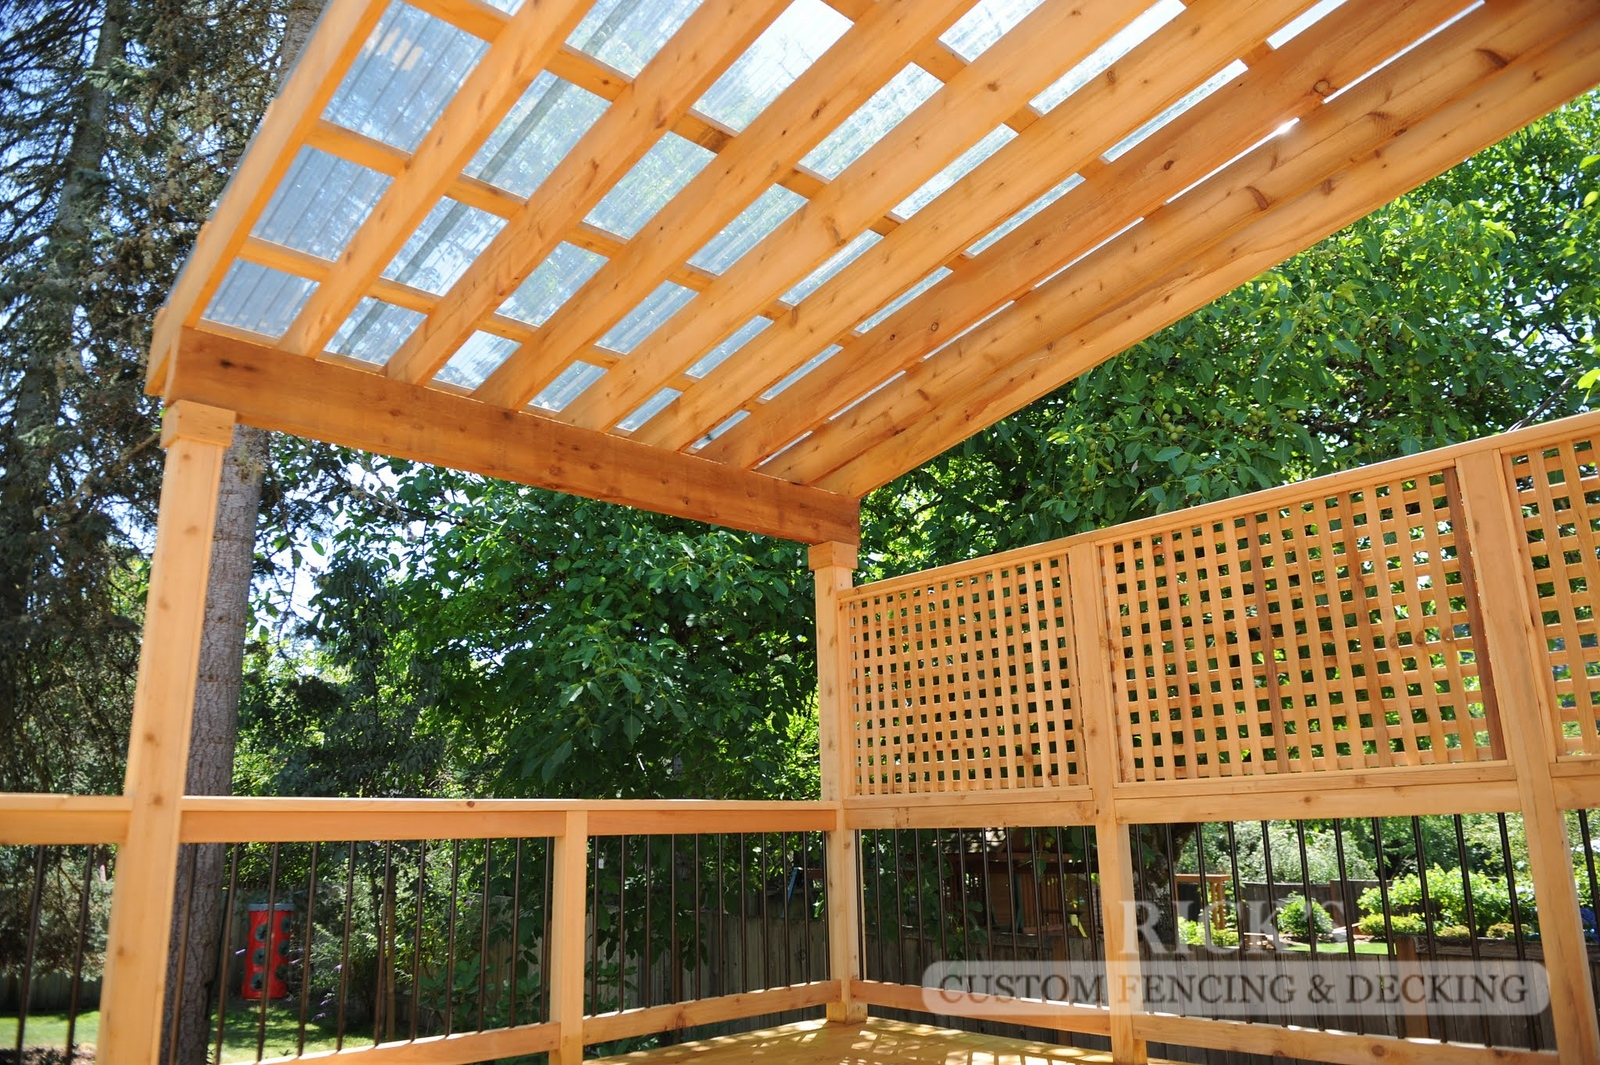 5128 - Wood-Framed Patio Cover with Acrylic Paneling